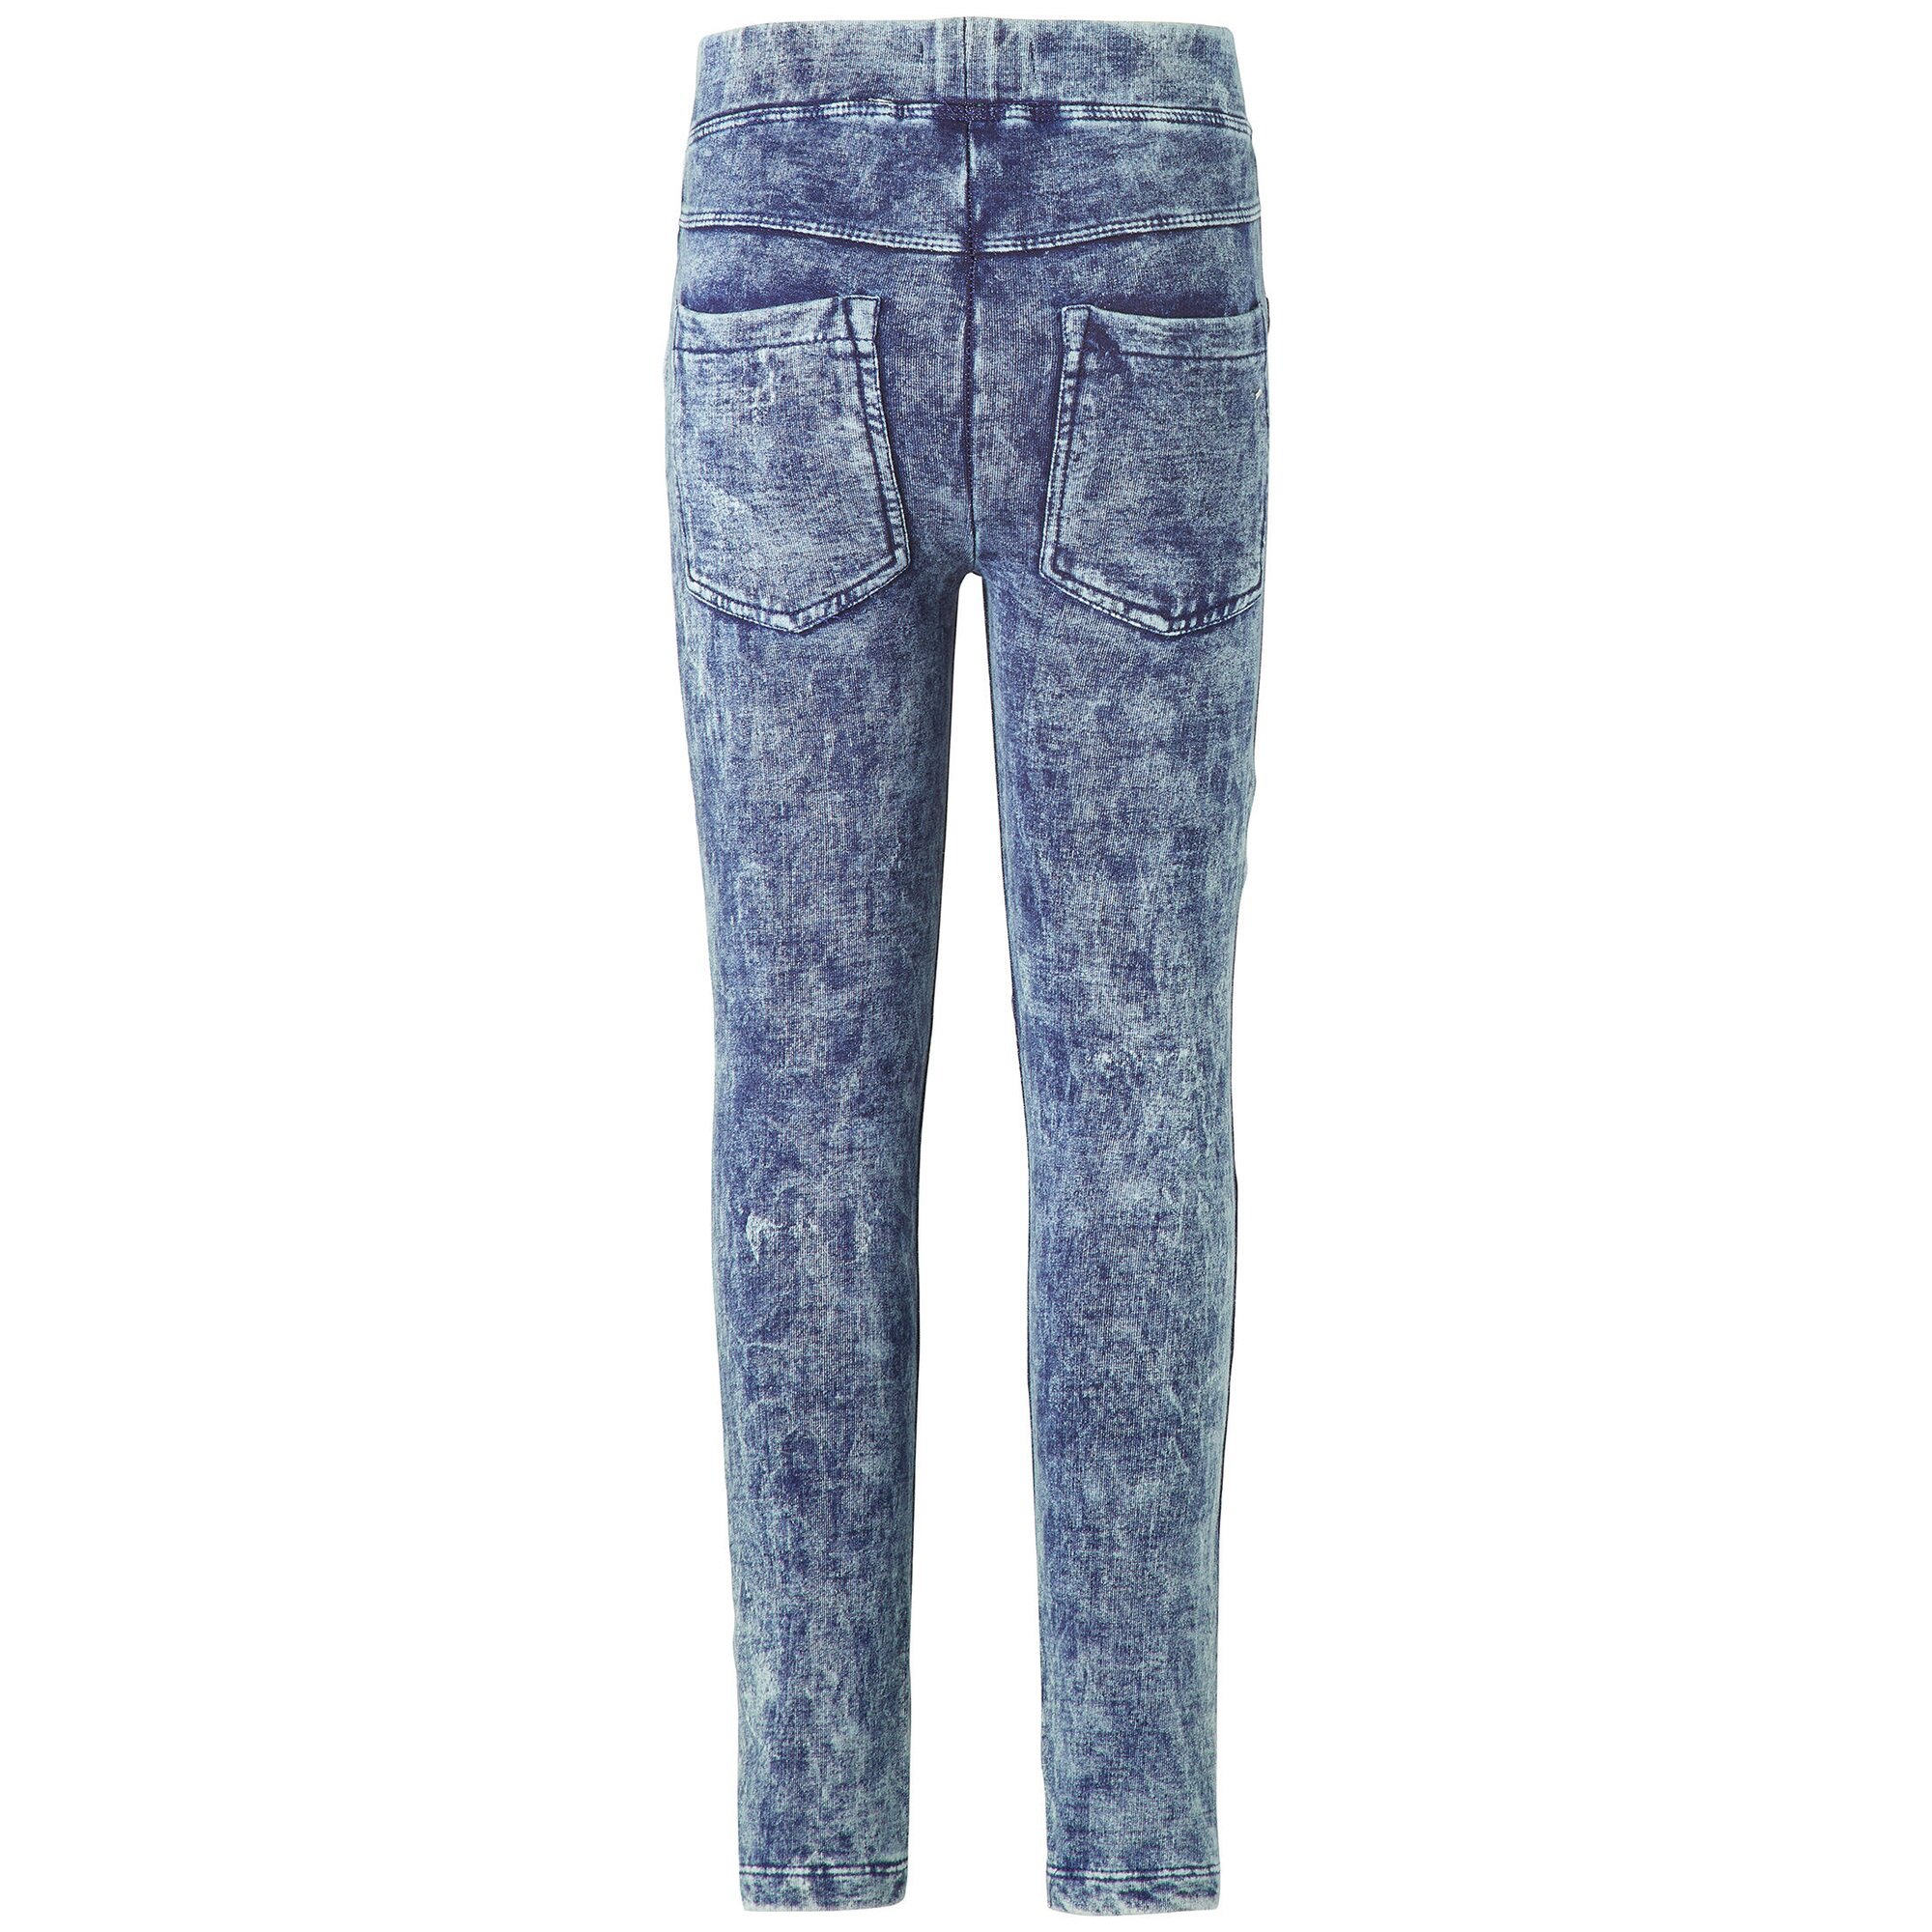 jeggings-louis, 29.99 EUR @ babywalz-de